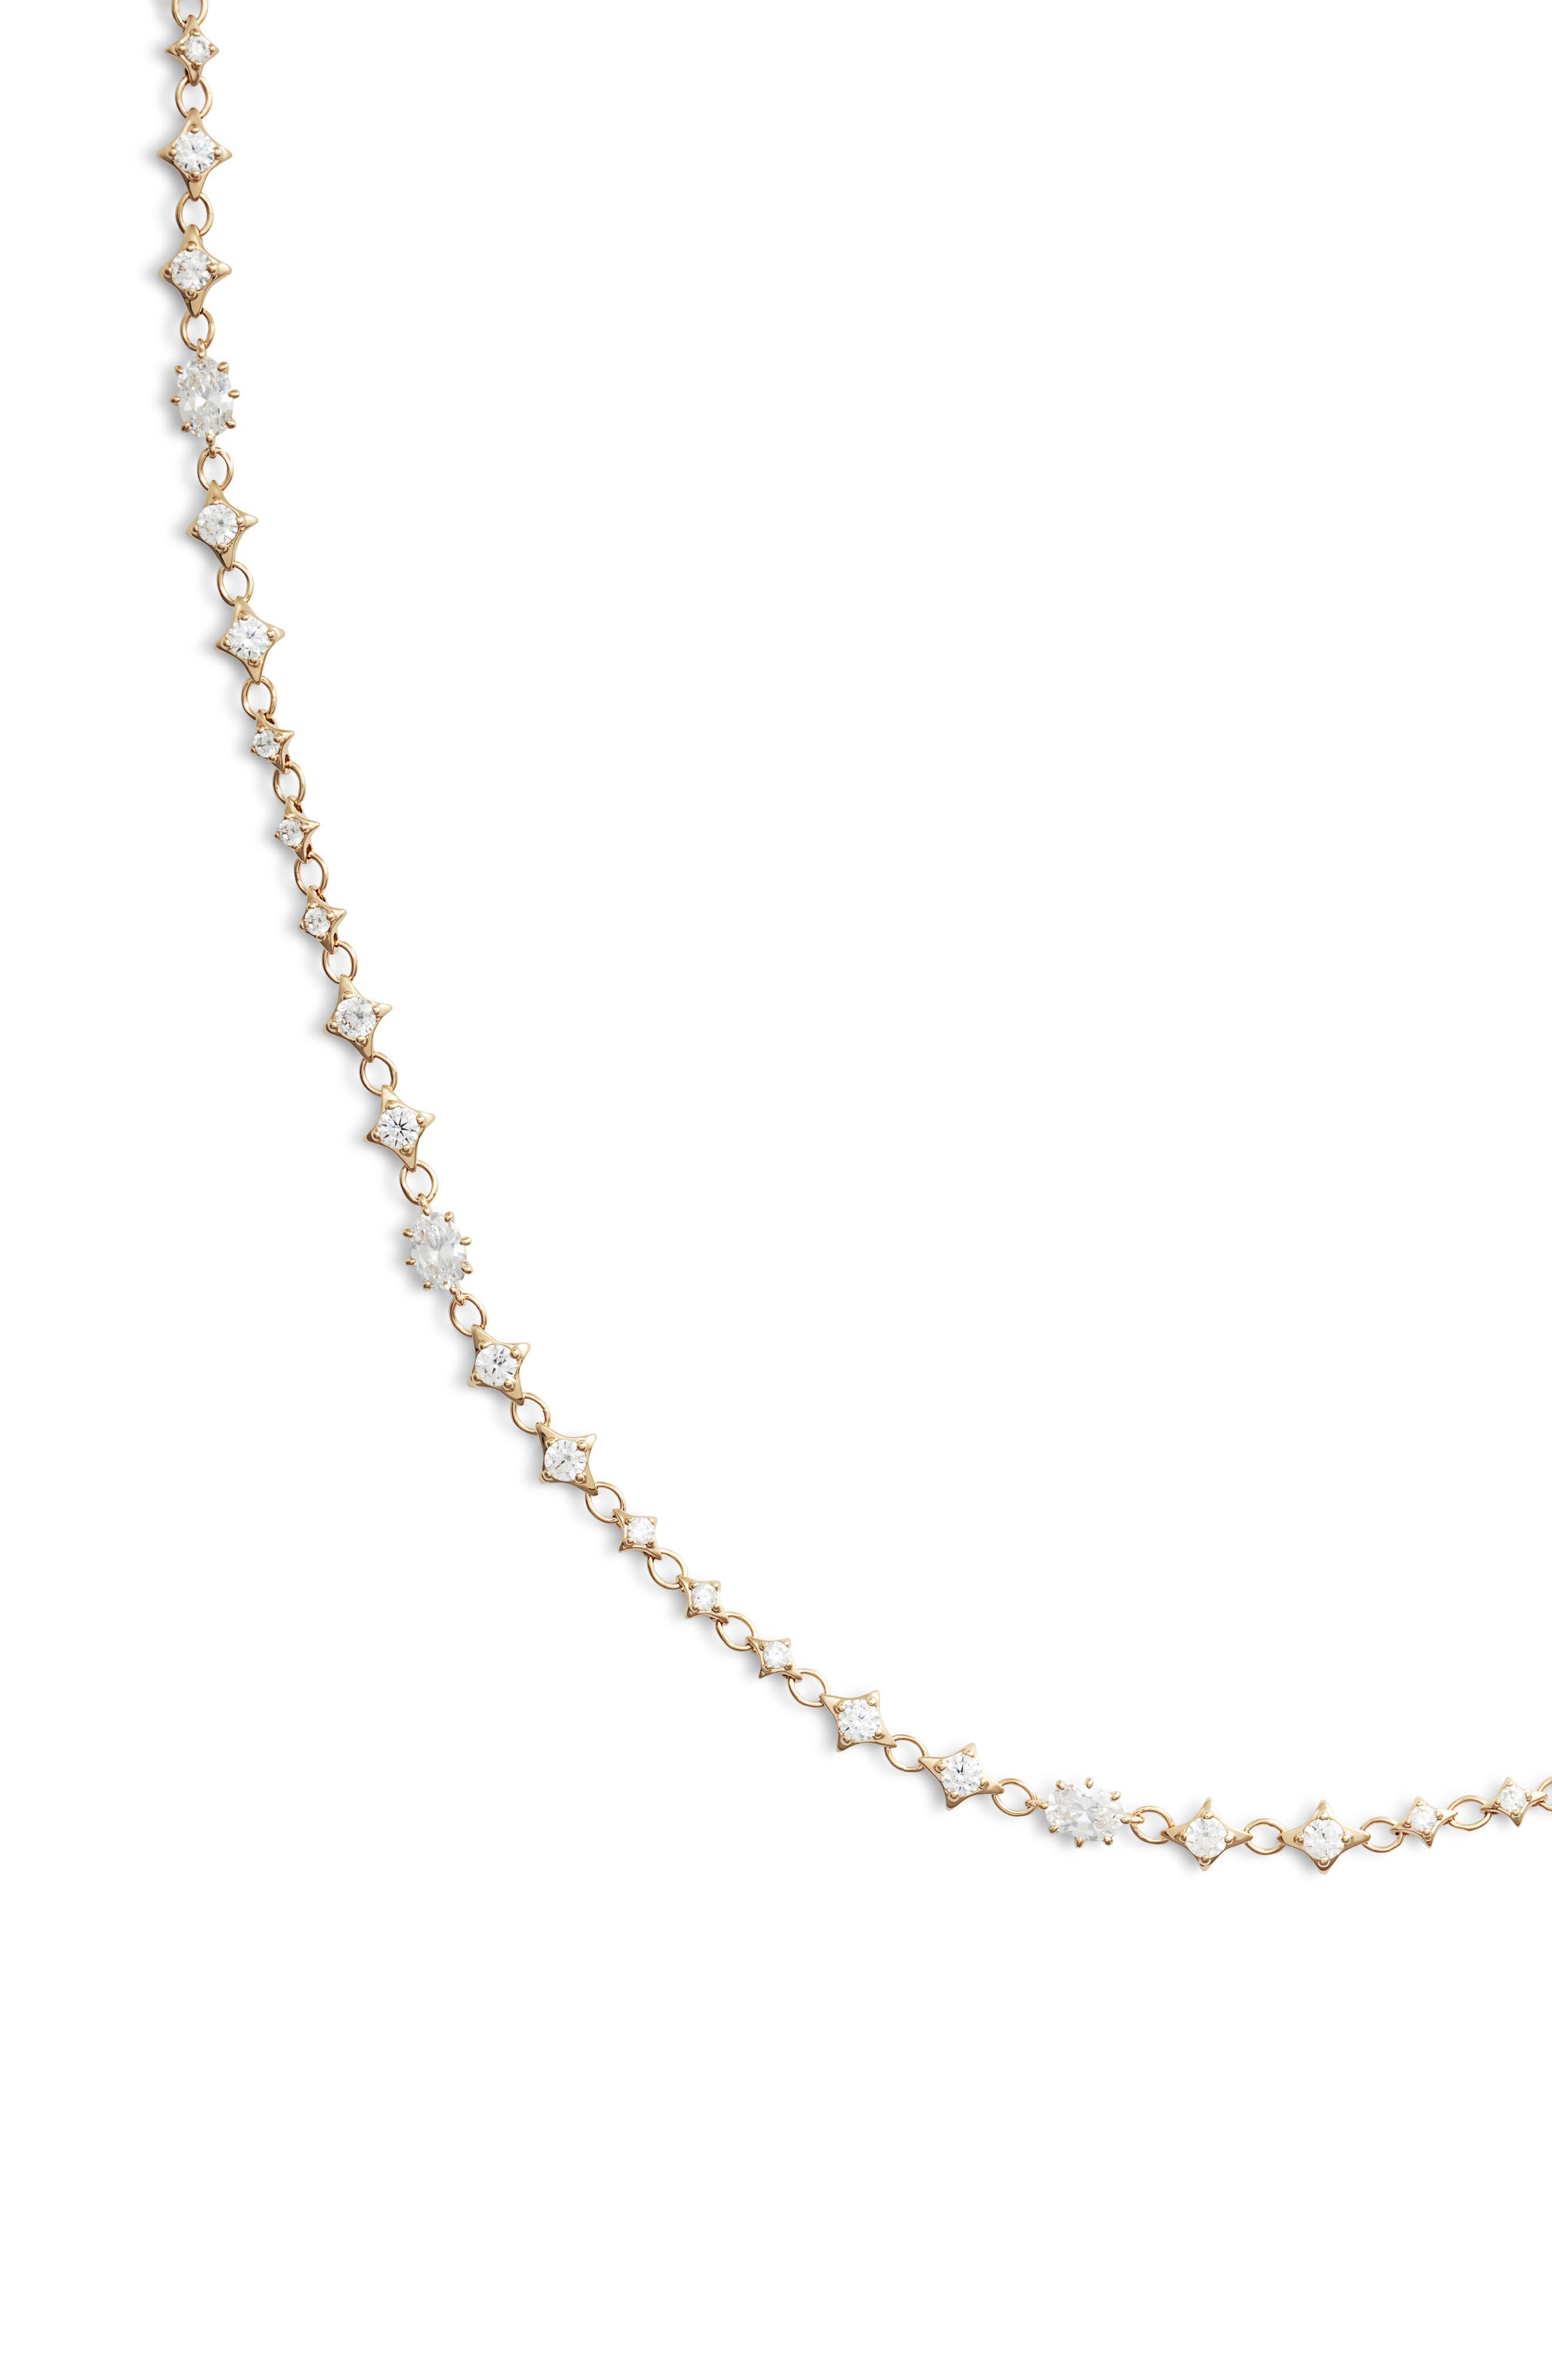 Boho Cubic Zirconia Necklace,                             Alternate thumbnail 2, color,                             GOLD/ CLEAR